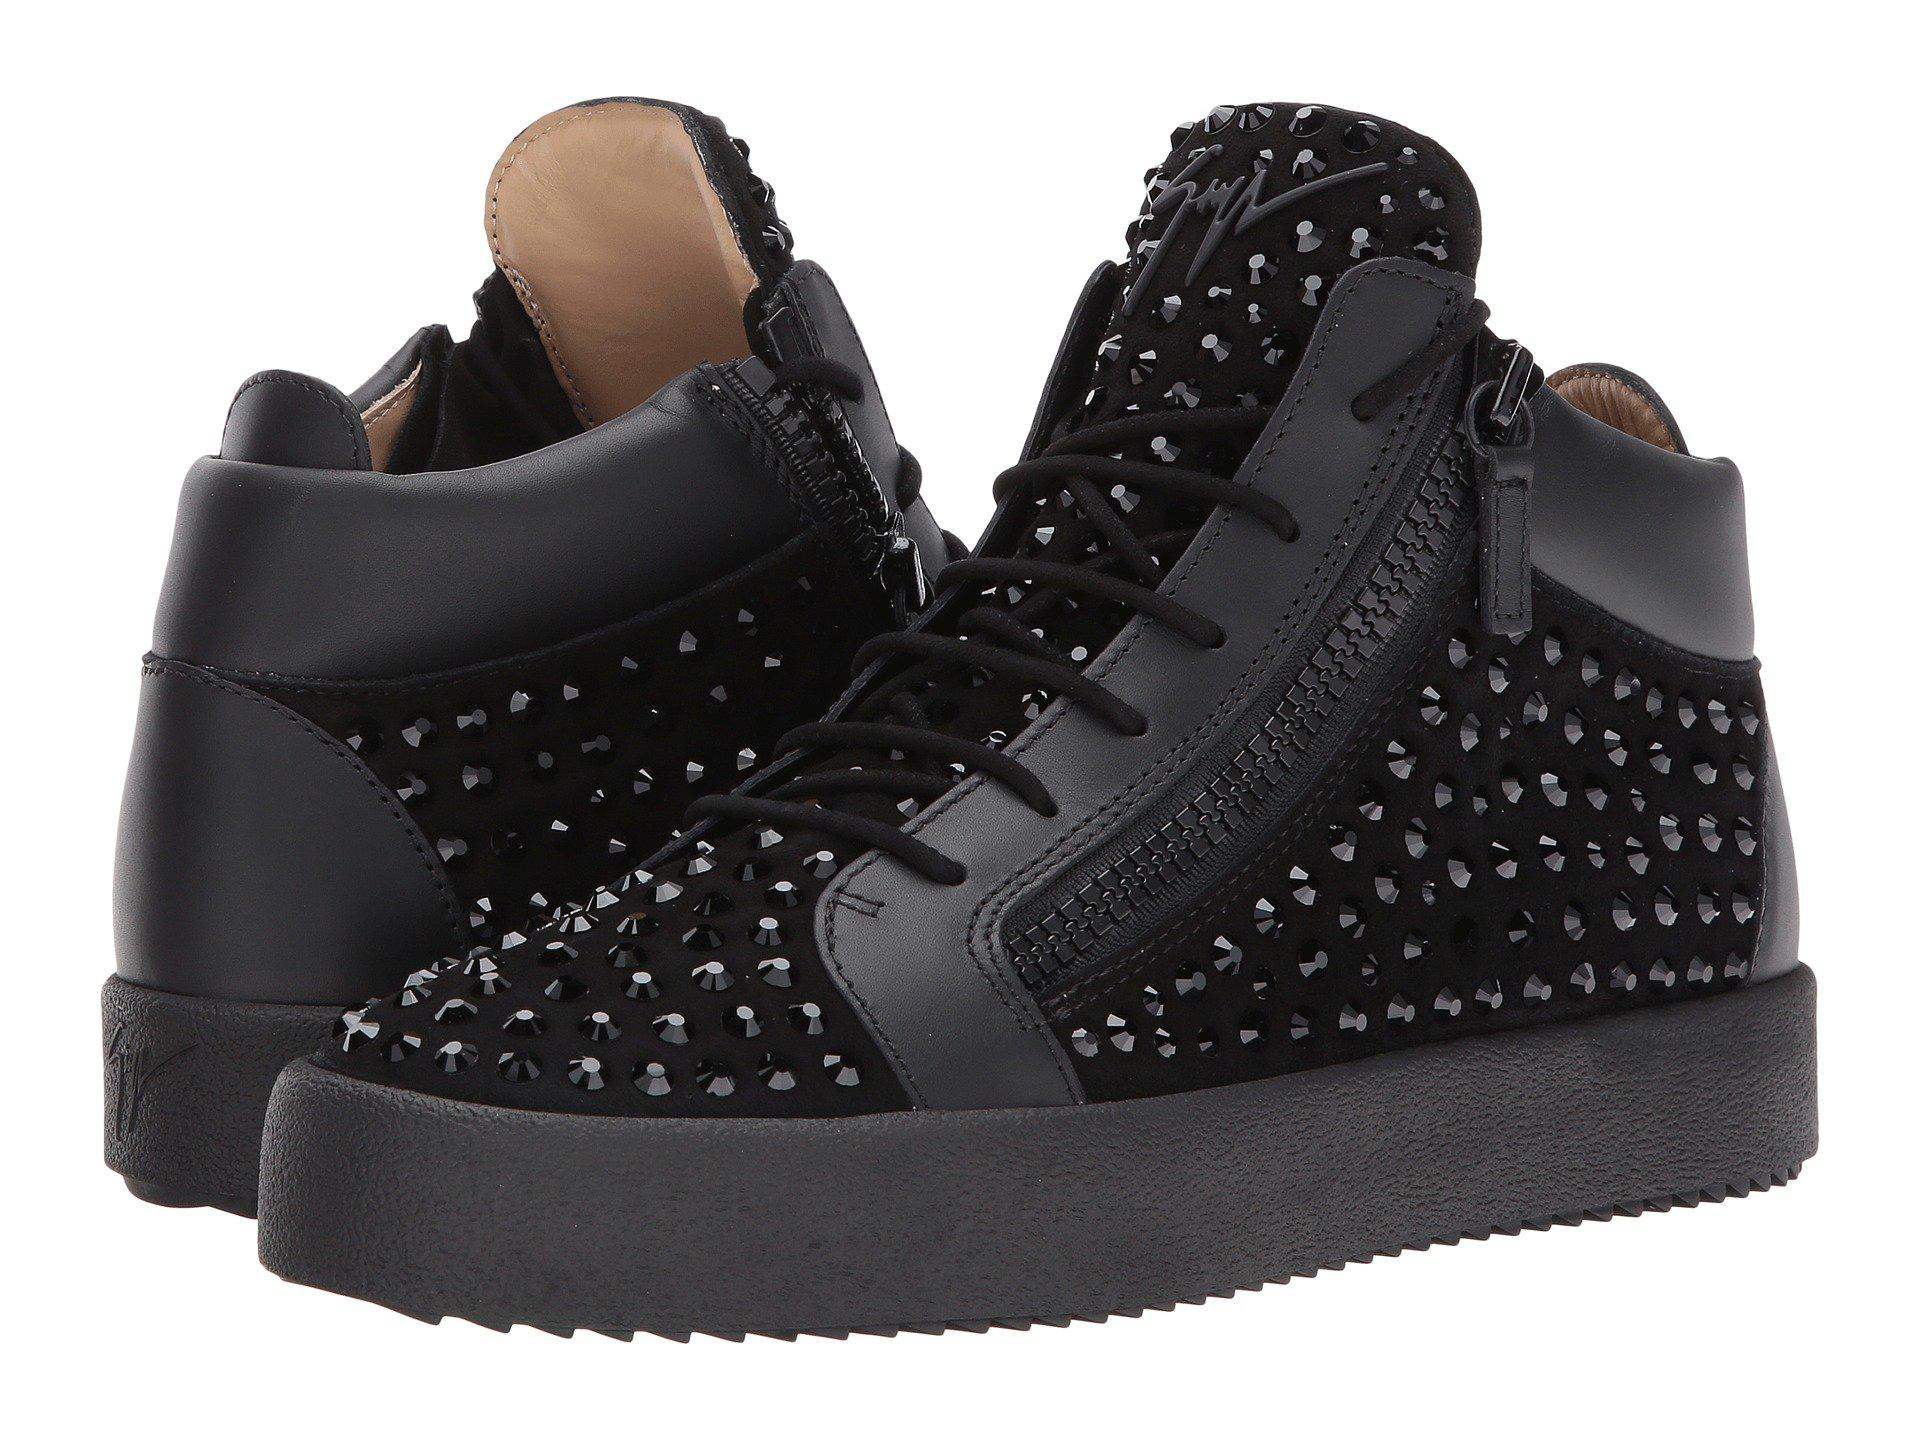 very cheap discount online Bottega Veneta Black May London Gigas Sneakers clearance amazing price clearance store for sale sale supply WqOwhmLMIu